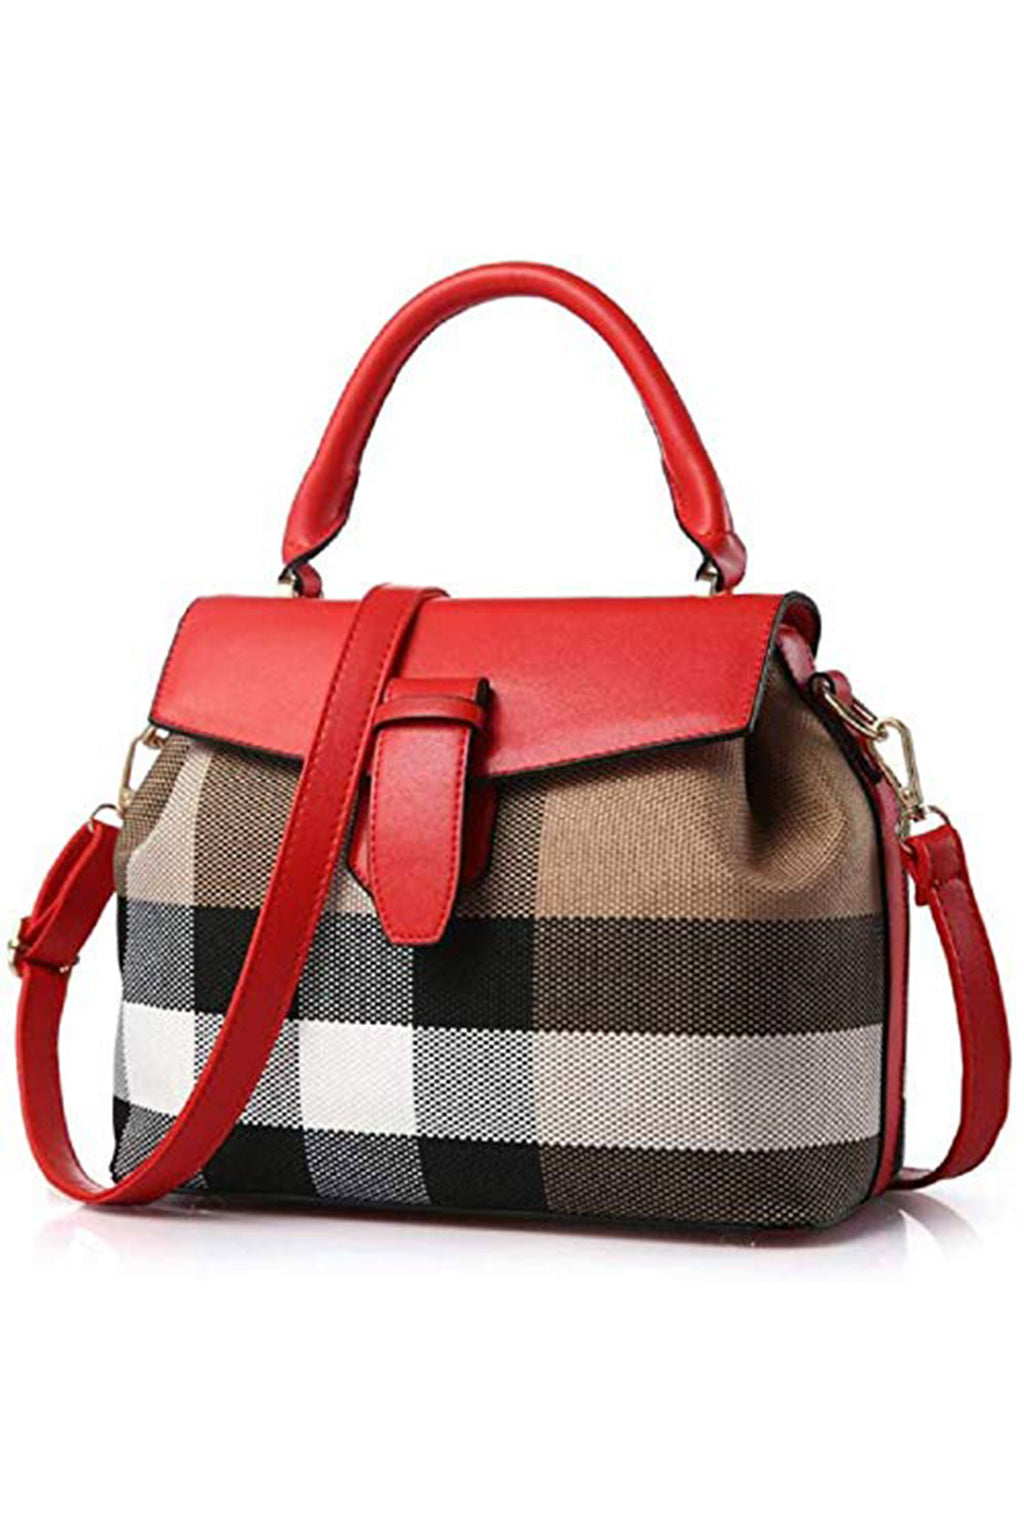 Stylish Cross-Body Checkered Red Beige Purse